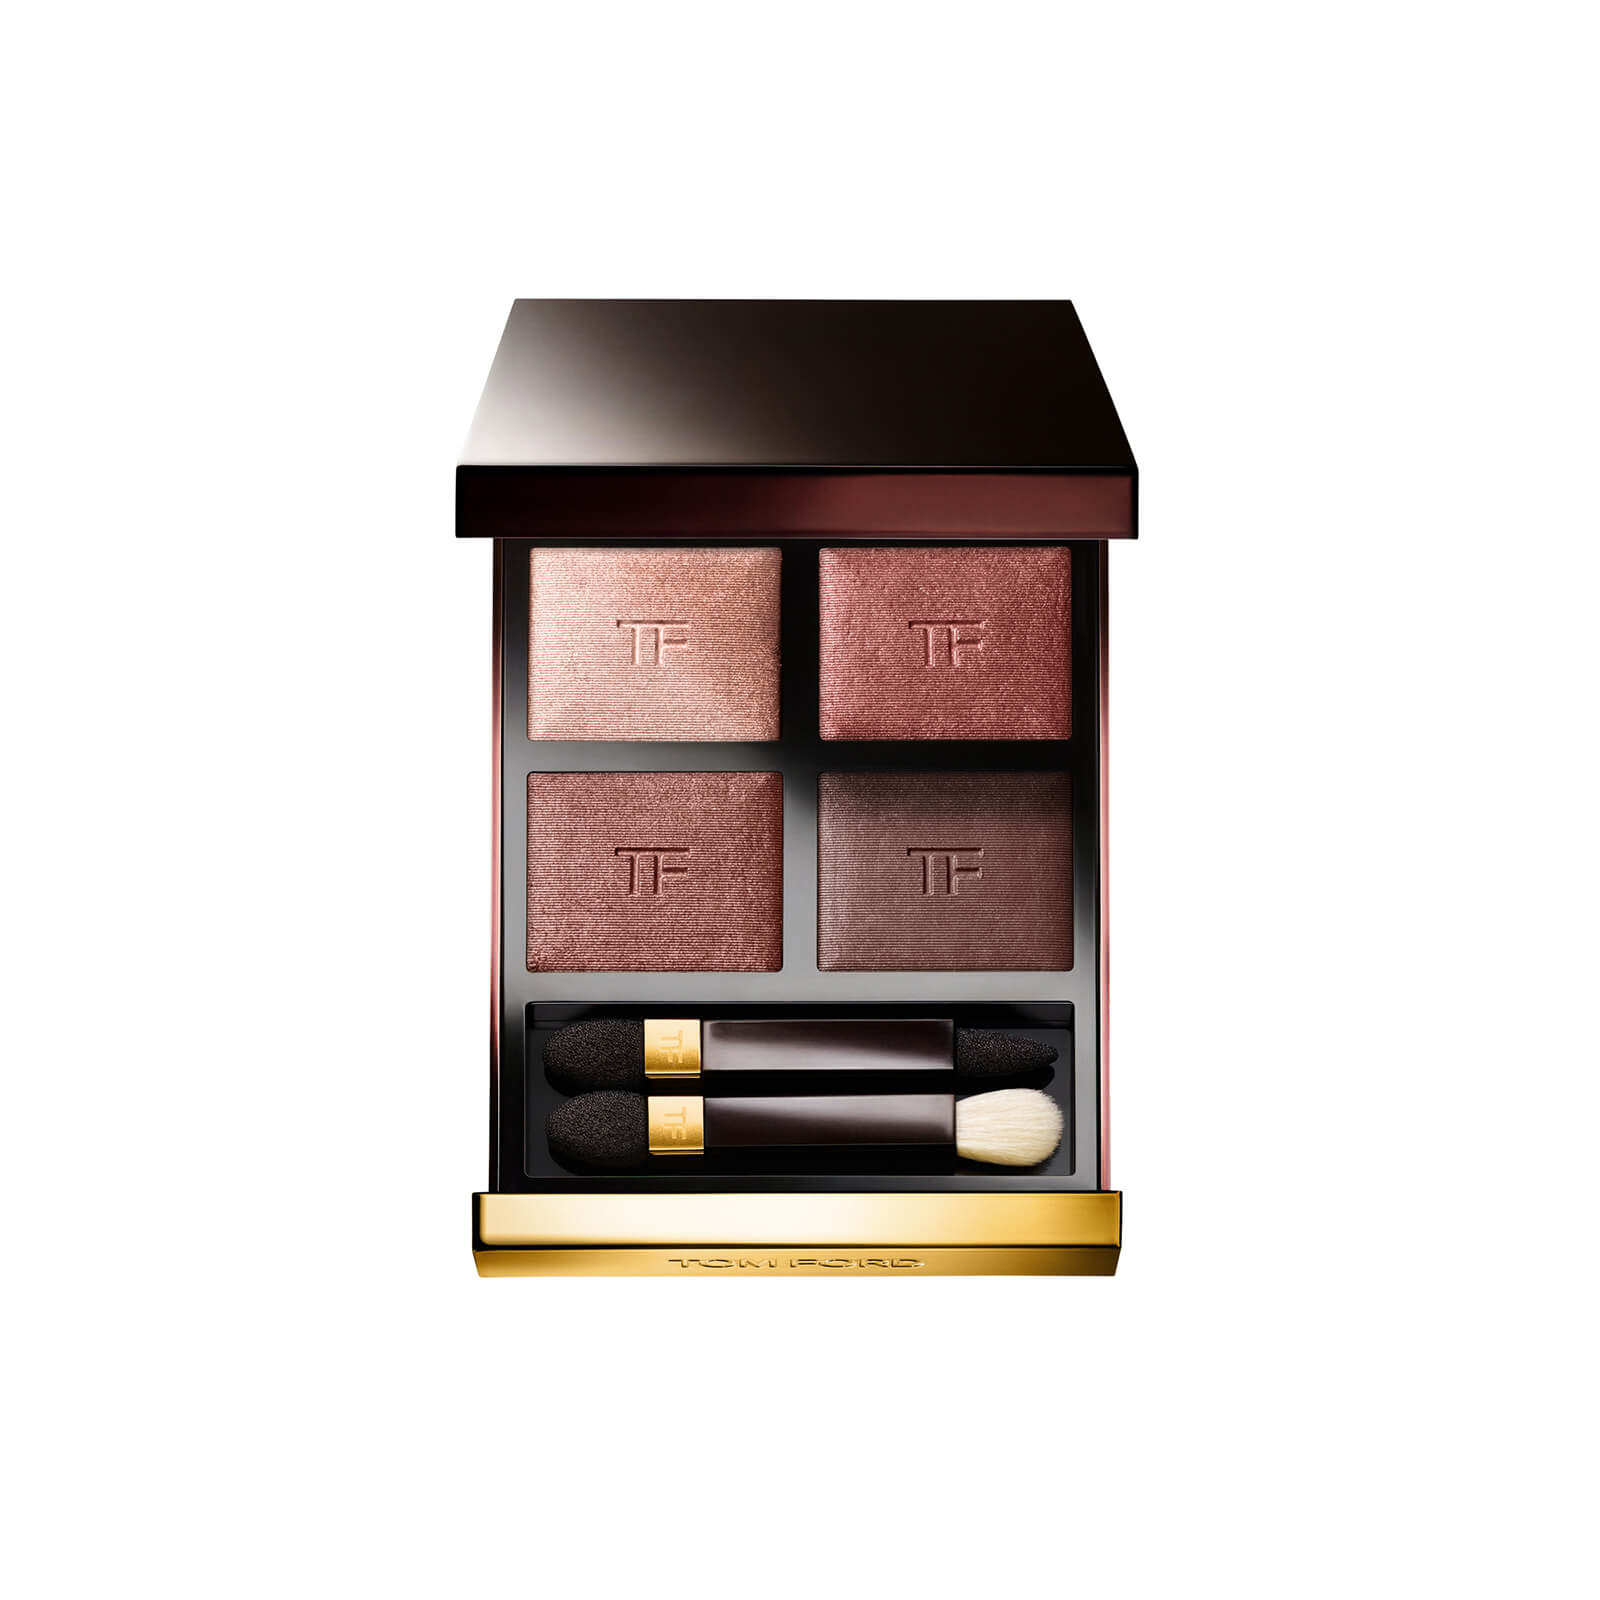 Tom Ford Eye Color Quad 10g (Various Shades) - Body Heat